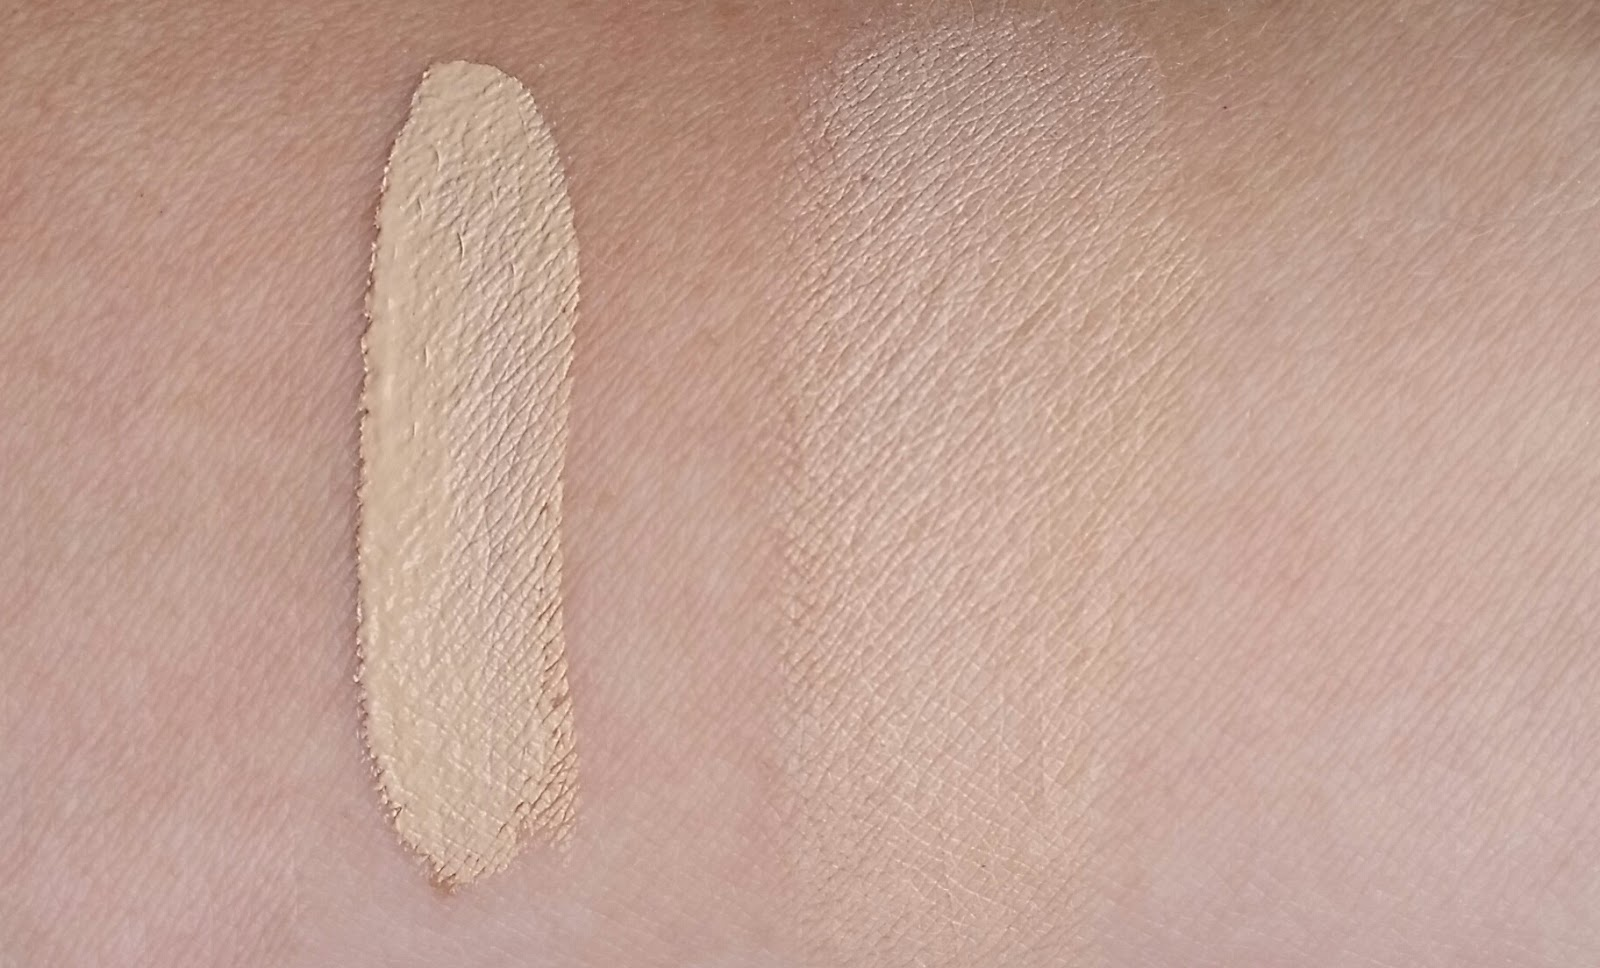 Maybelline SuperStay Better Skin Concealer swatches